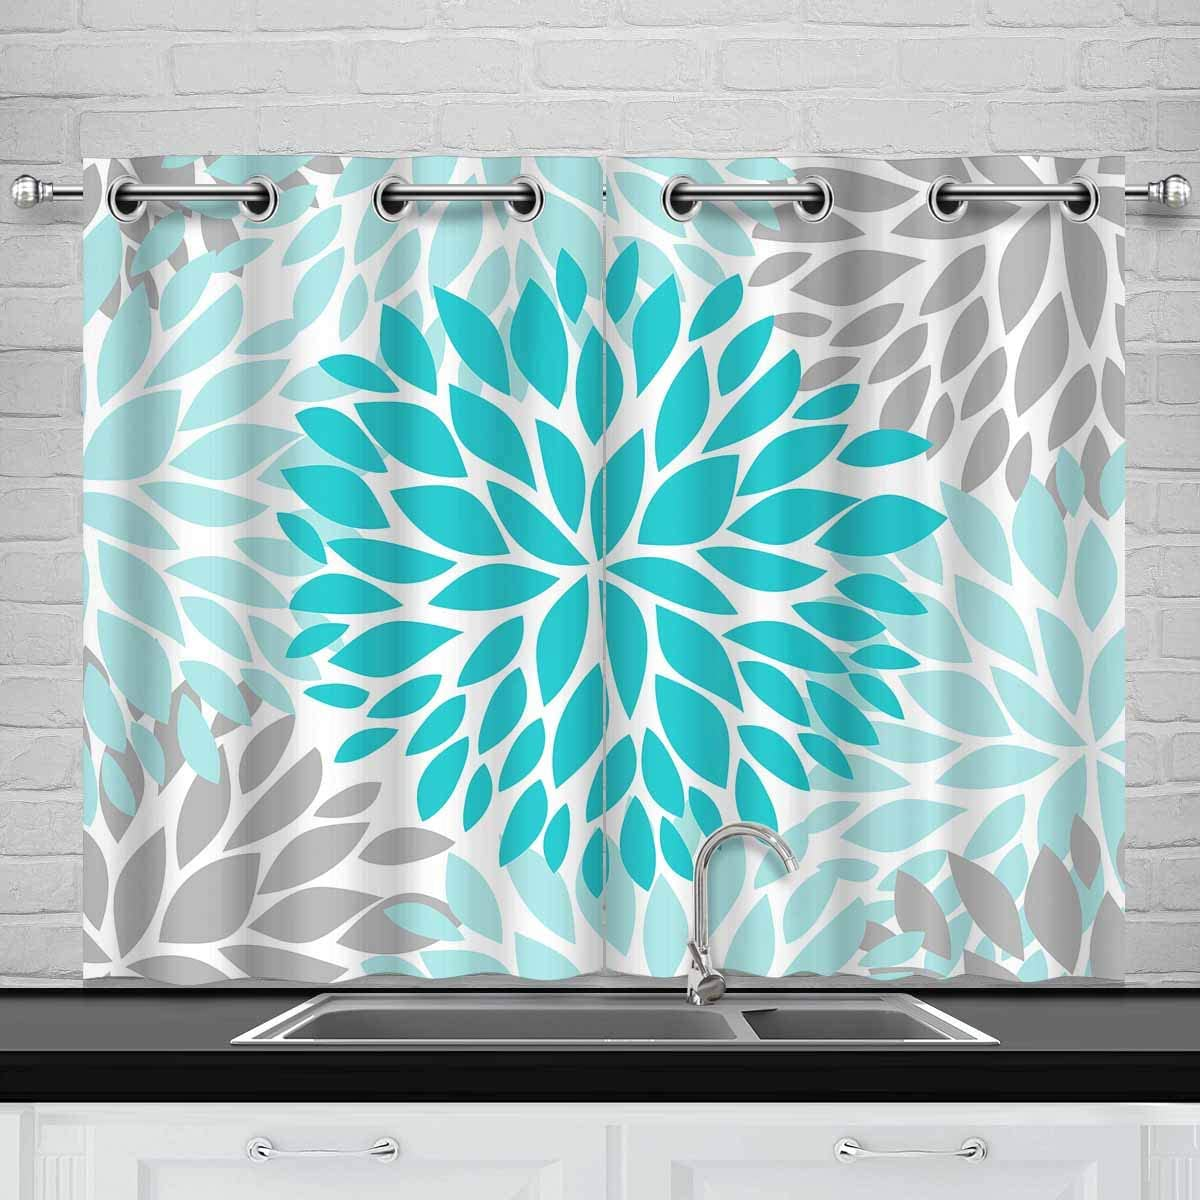 InterestPrint Dahlia Pinnata Flower Turquoise Blue and Gray Blackout Window Curtain Panels Thermal Insulated Window Curtain for Living Room Bedroom, 30 x 45 Length, 2 Pcs